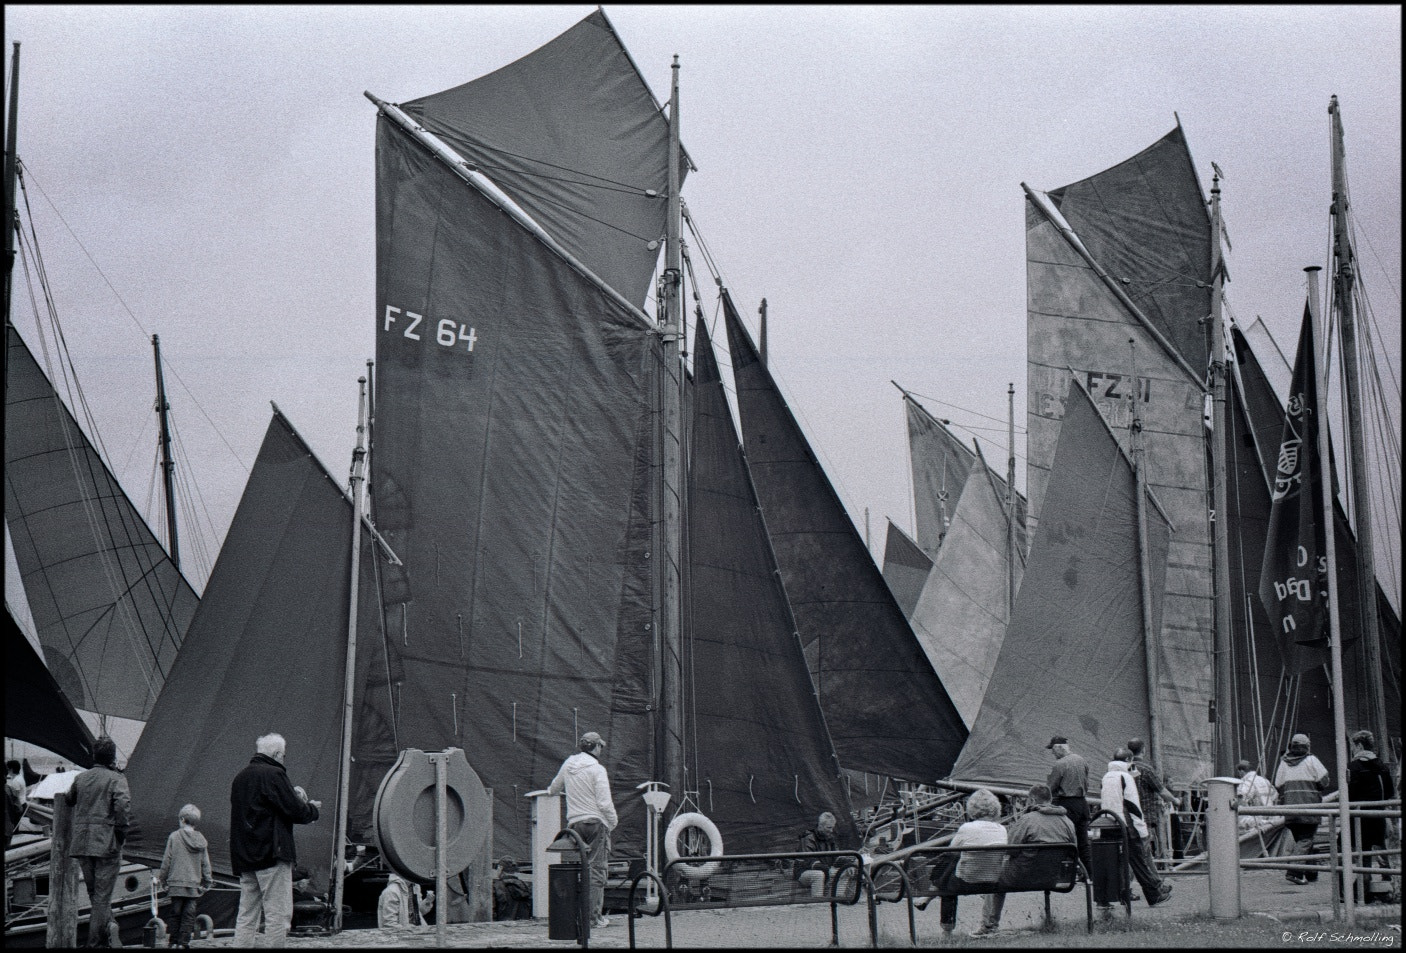 Photograph Sails. Zeese-Boot race on the Bodden, Baltic Sea, July 2012. by Rolf Schmolling on 500px